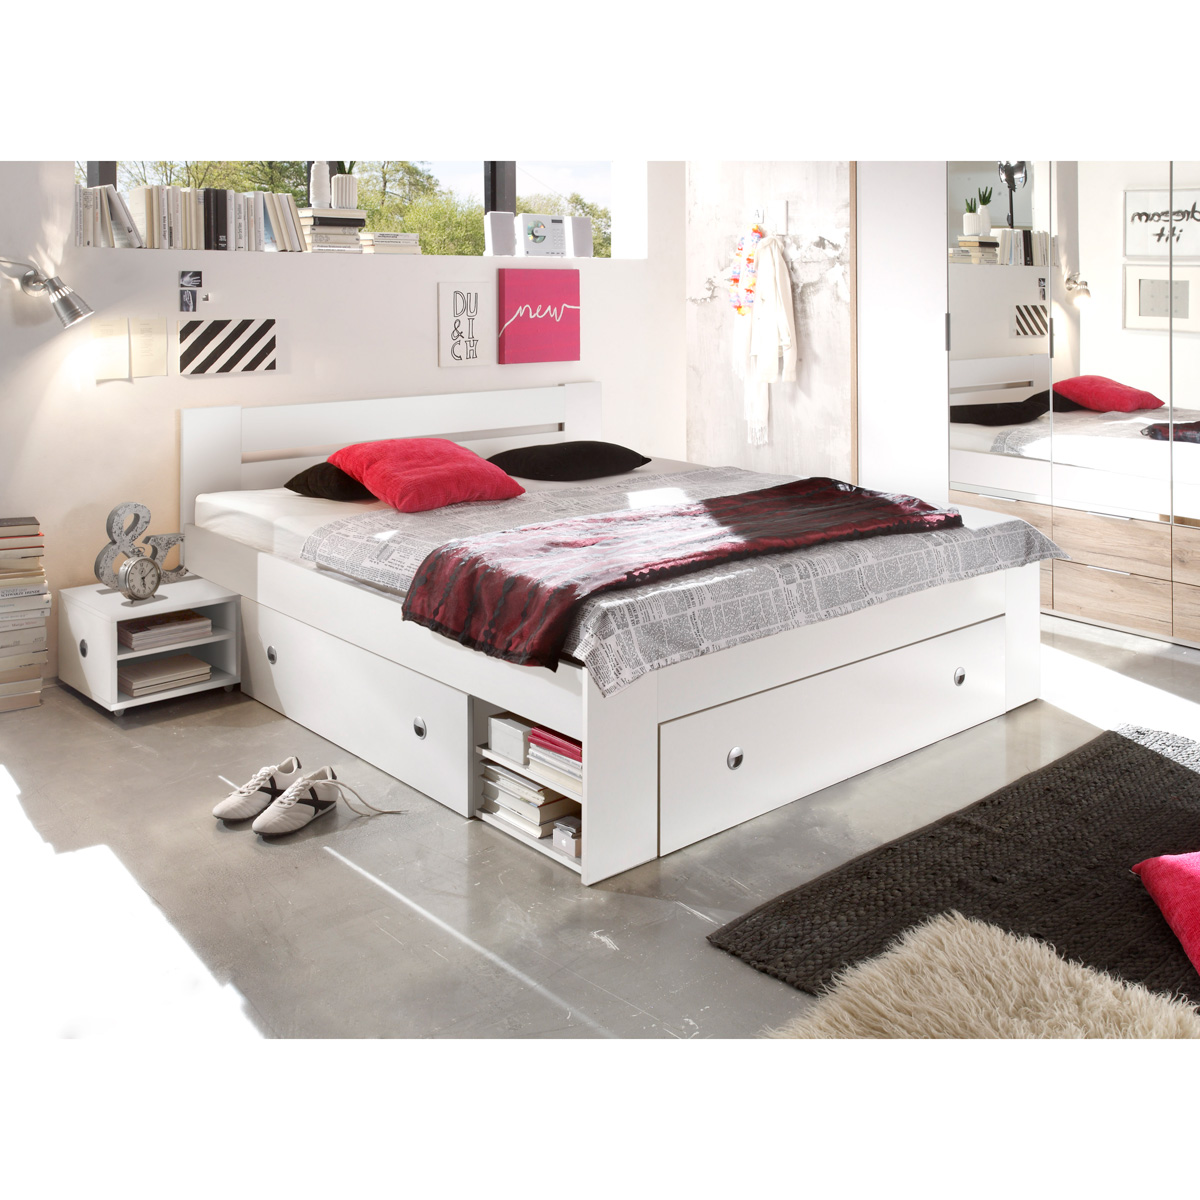 bett stefan funktionsbett doppelbett bettanlage mit nachttischen wei 180x200. Black Bedroom Furniture Sets. Home Design Ideas